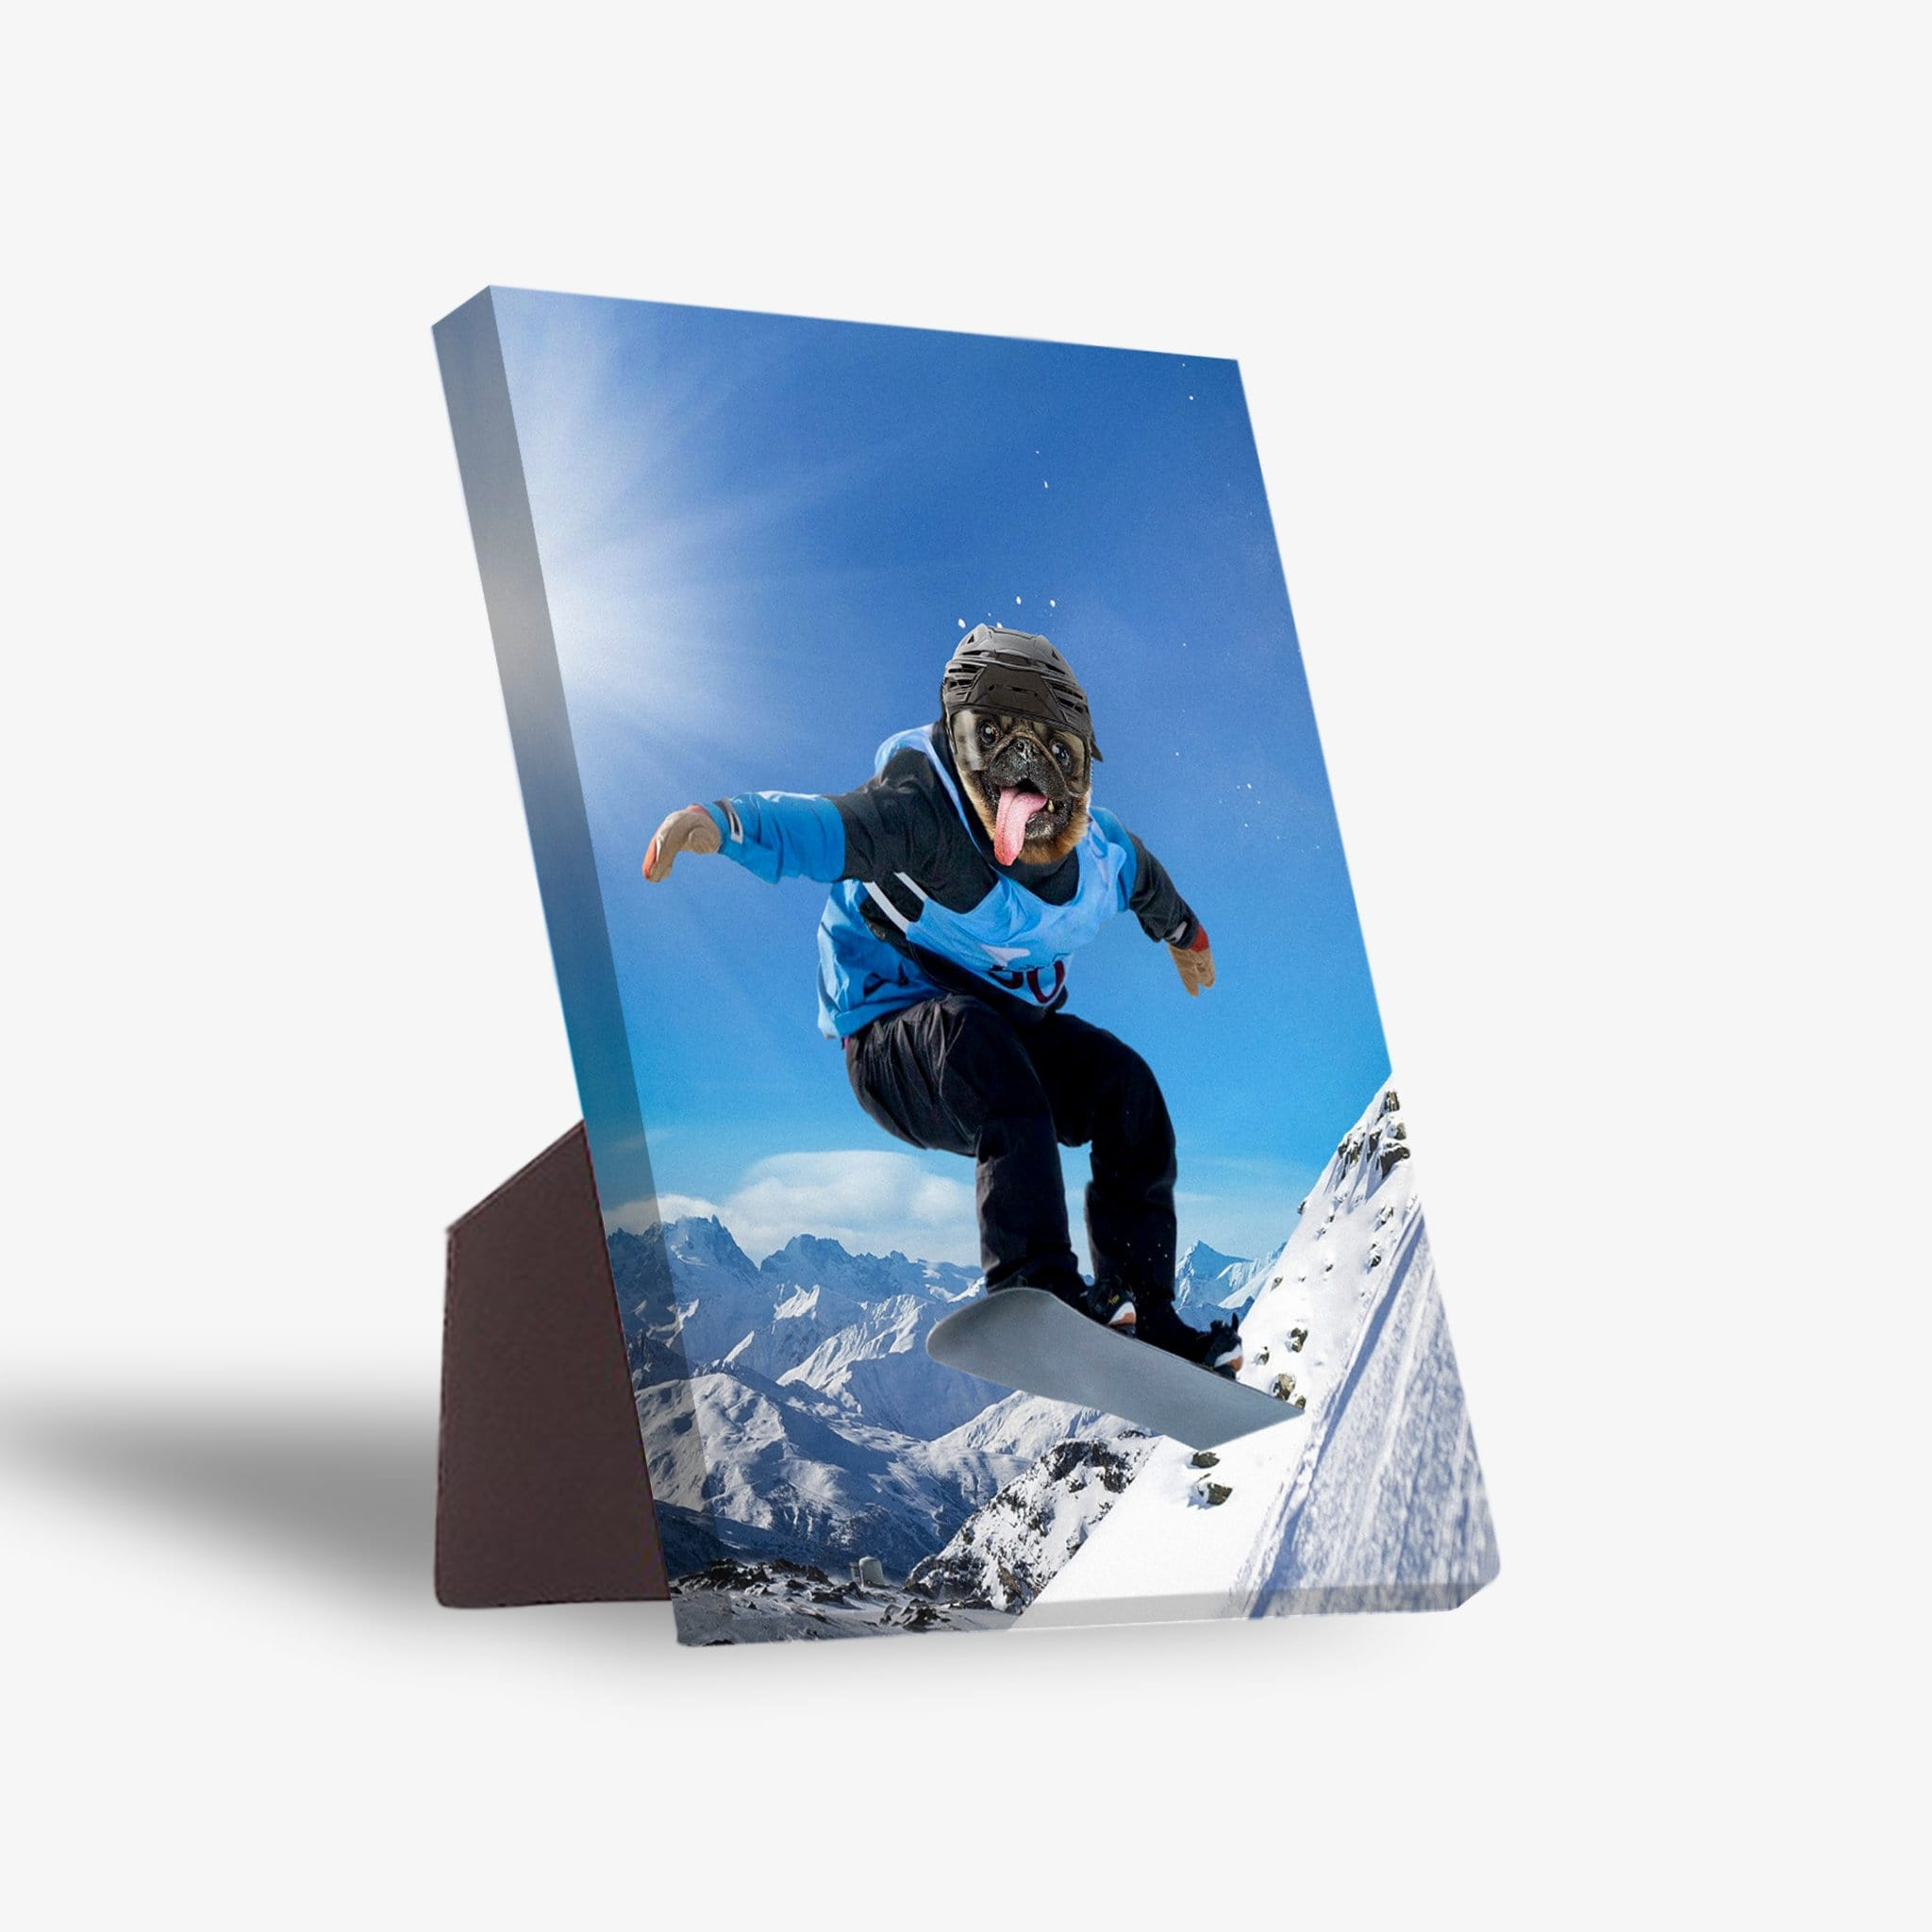 'The Snowboarder' Personalized Pet Standing Canvas